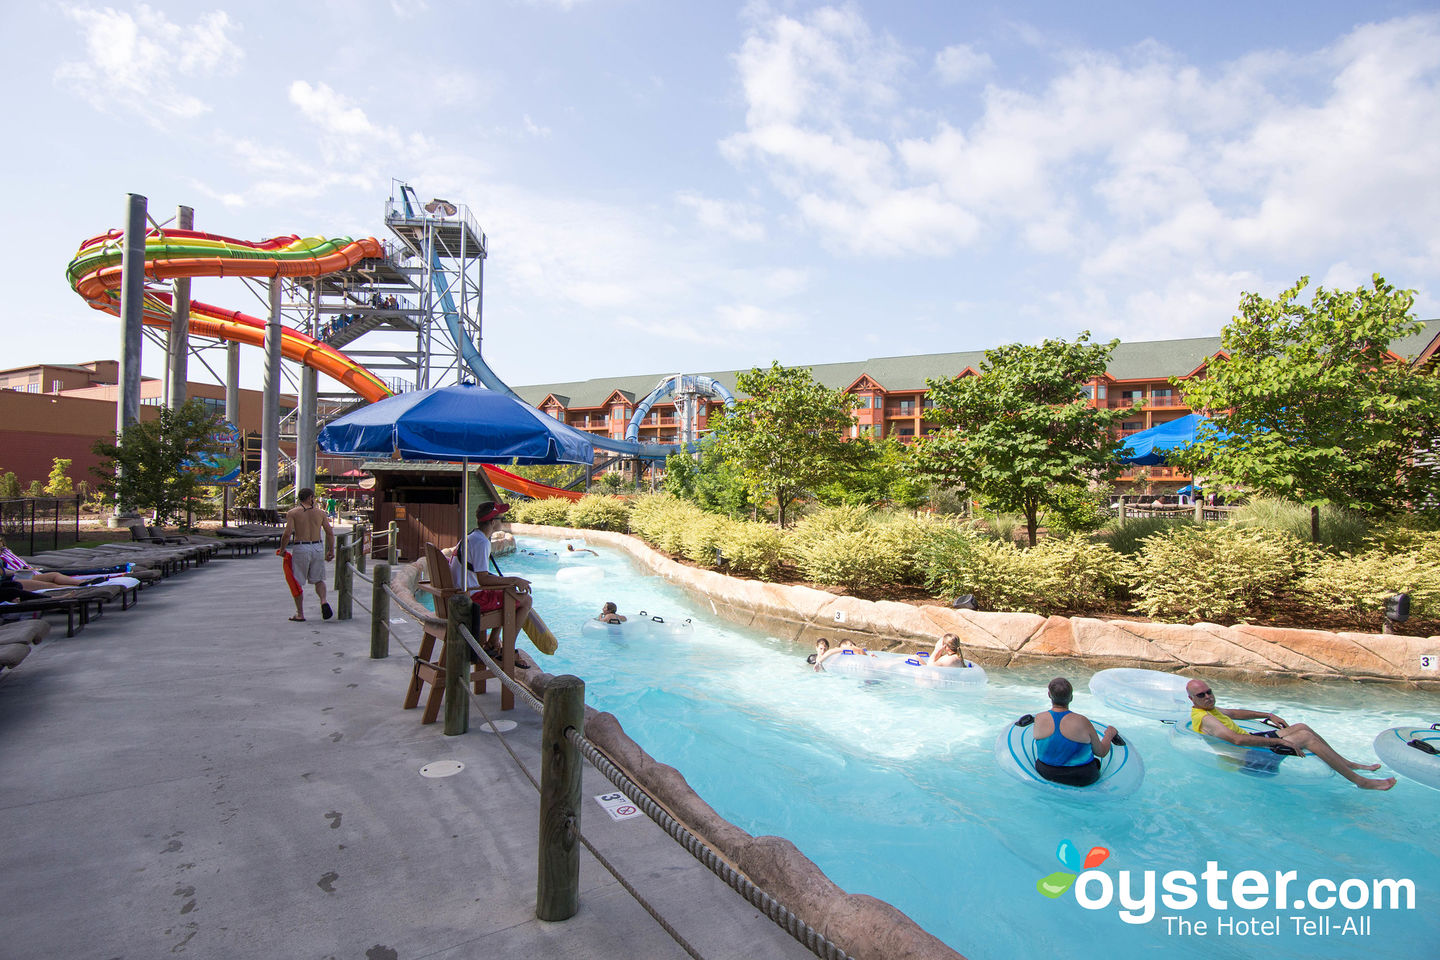 The Best Indoor Hotel Water Parks in the United States (updated 2019